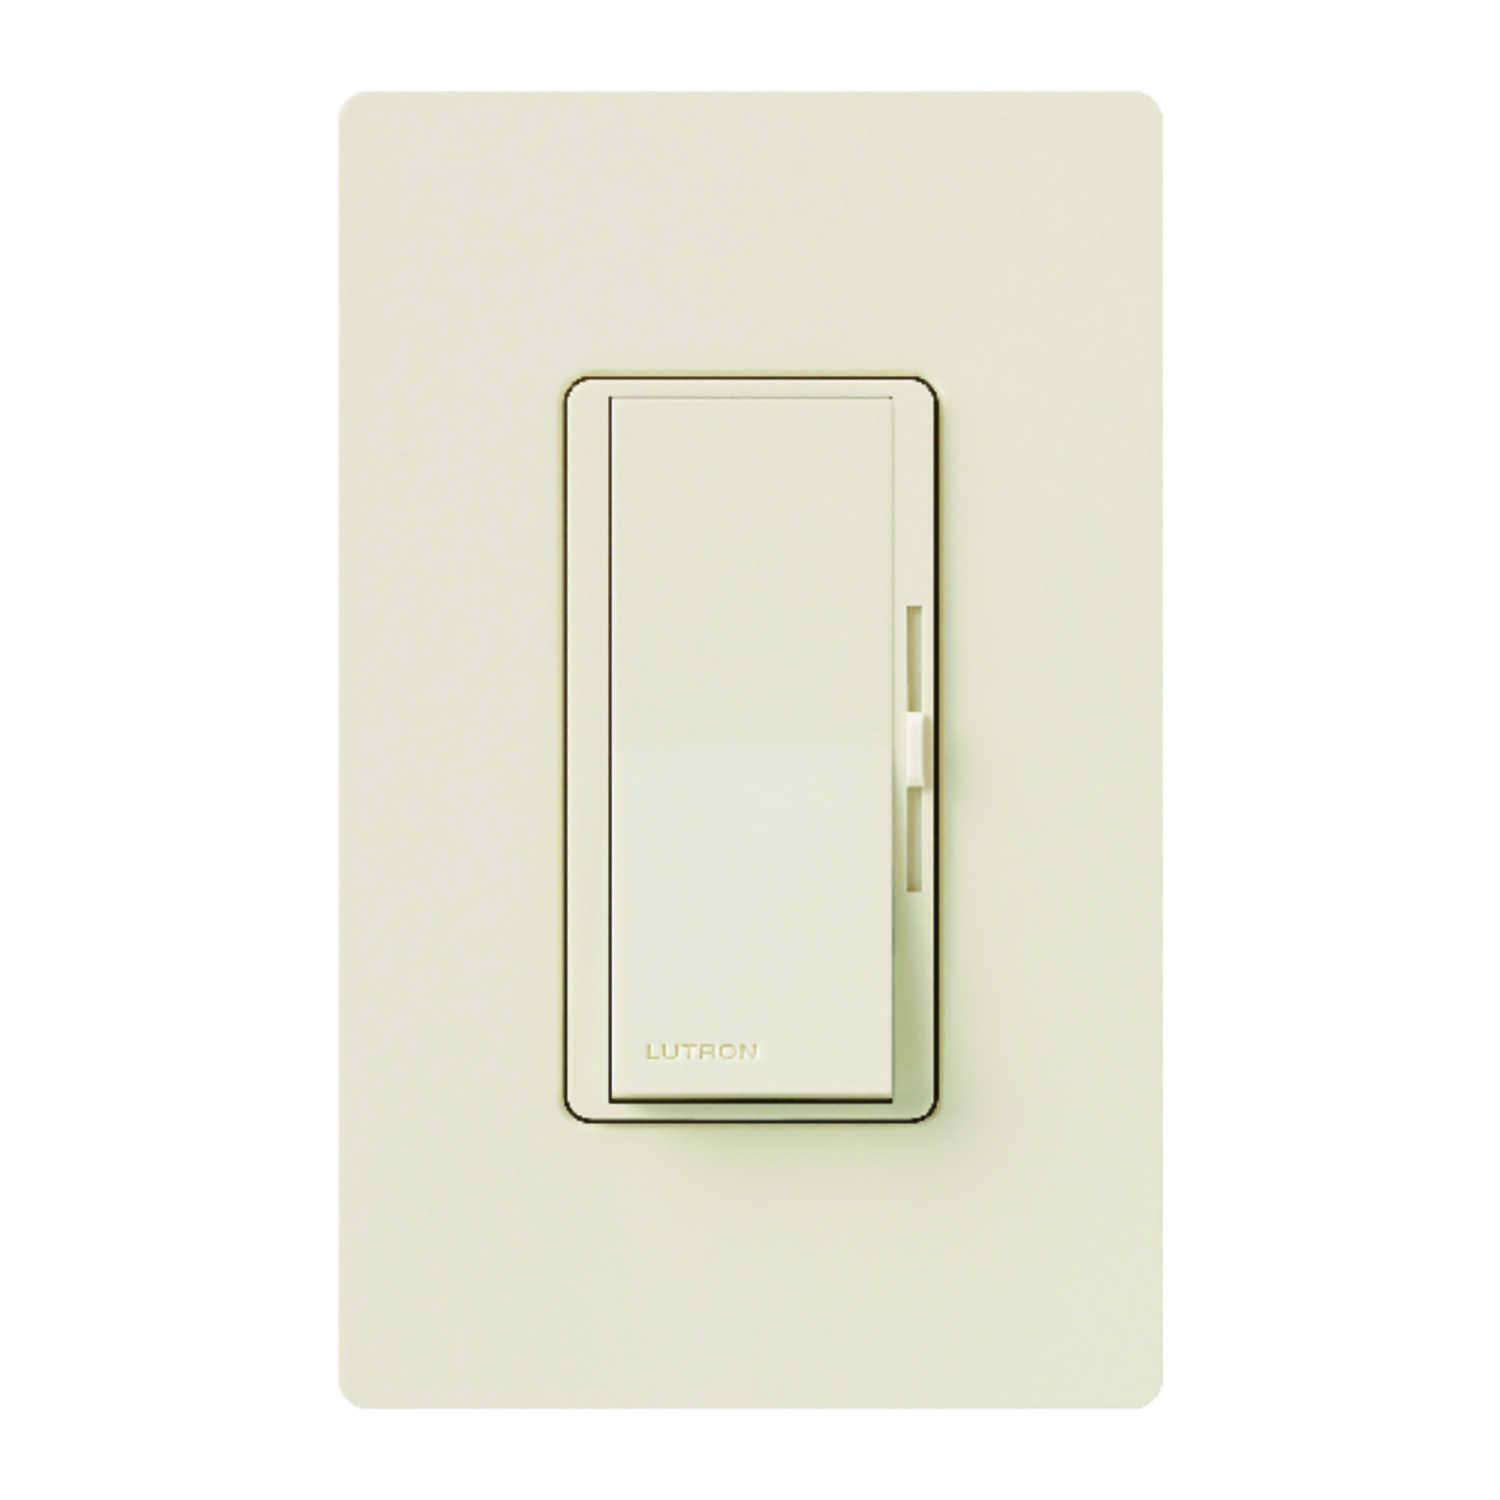 Lutron  Diva  Light Almond  150 watts 3-Way  Dimmer Switch  1 pk